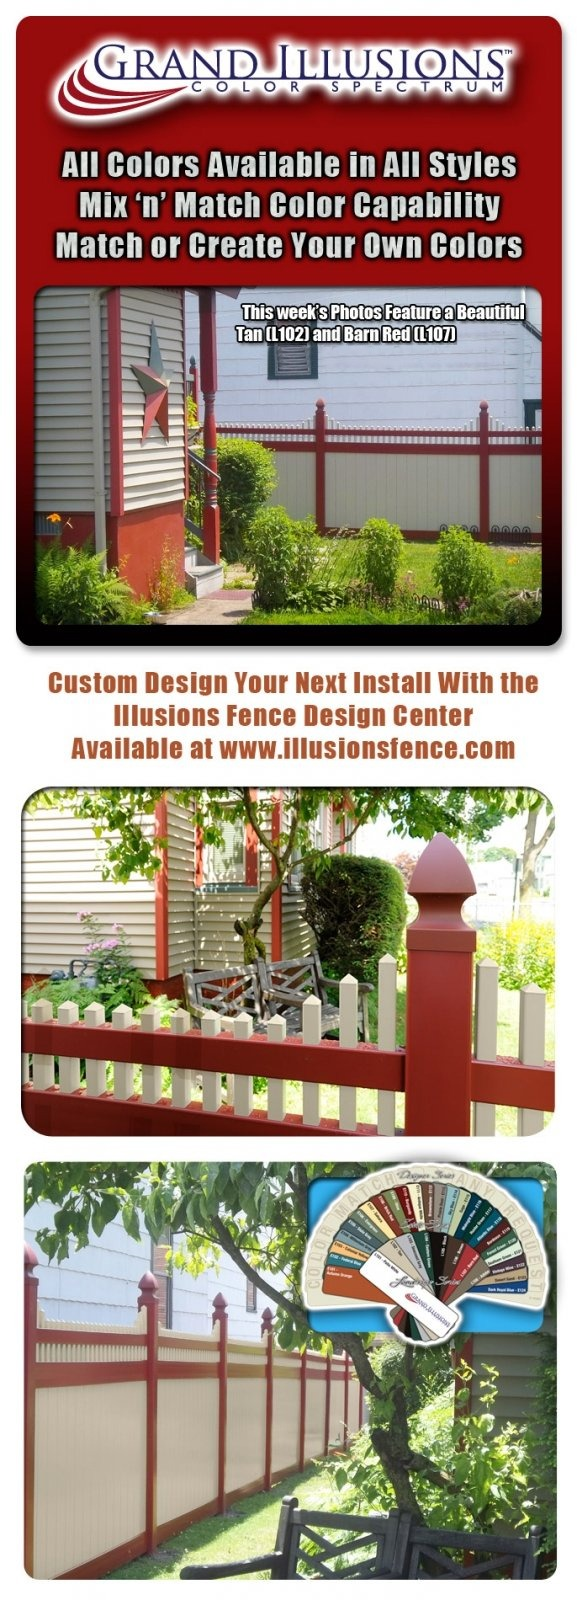 V3706-6 Privacy Fence with Stepped Classic Victorian topper; Landscape Series Tan (L102) Panels and Pickets; Landscape Series Barn Red (L107) Rails, Posts and French Gothic Caps (V55FG)